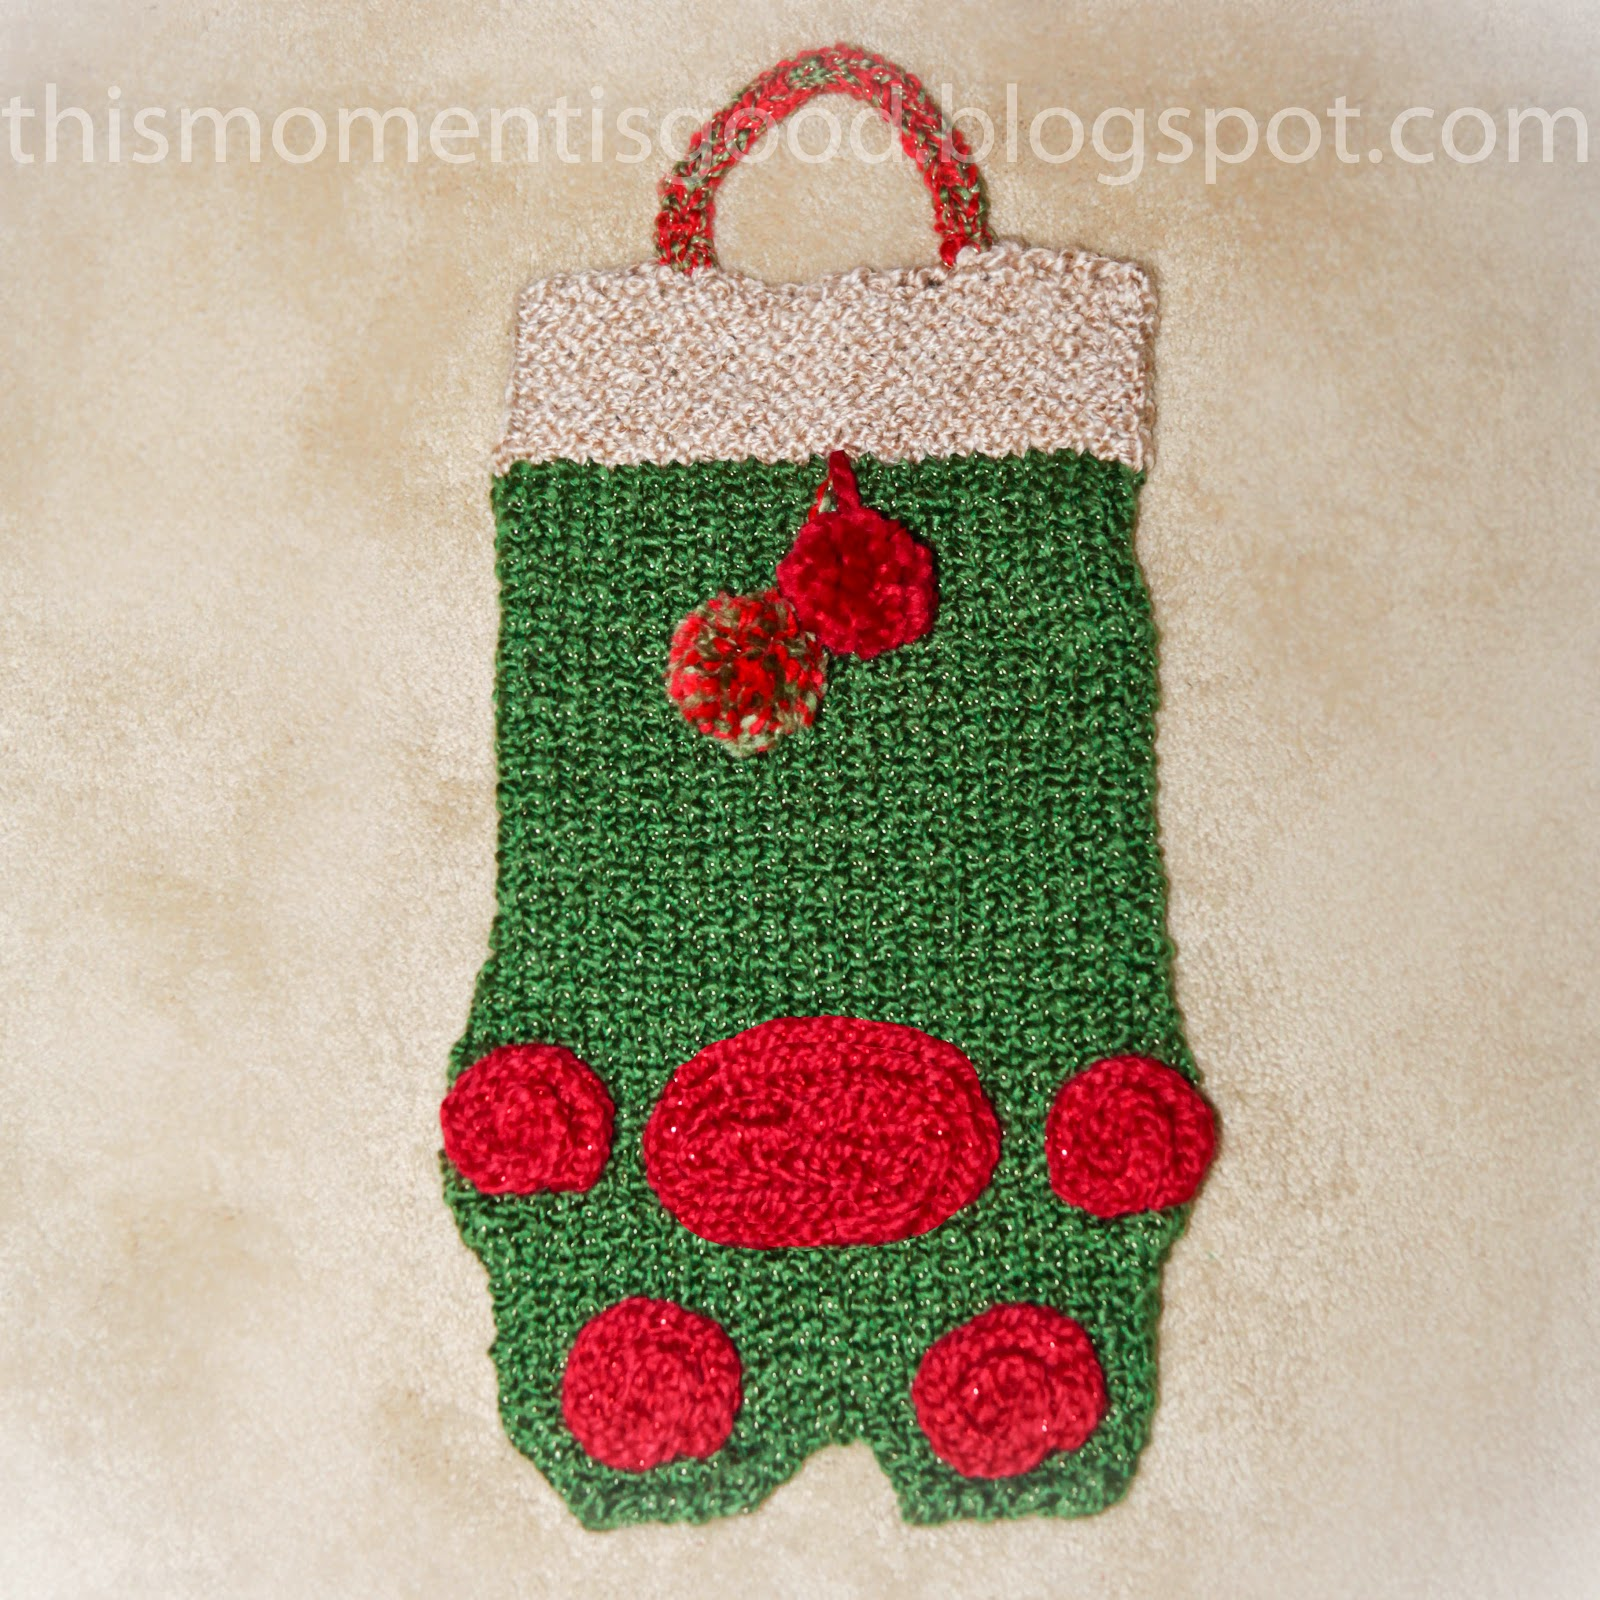 Easy Stocking Knitting Pattern : Loom Knitting by This Moment is Good!: LOOM KNIT PET STOCKING PATTERN...